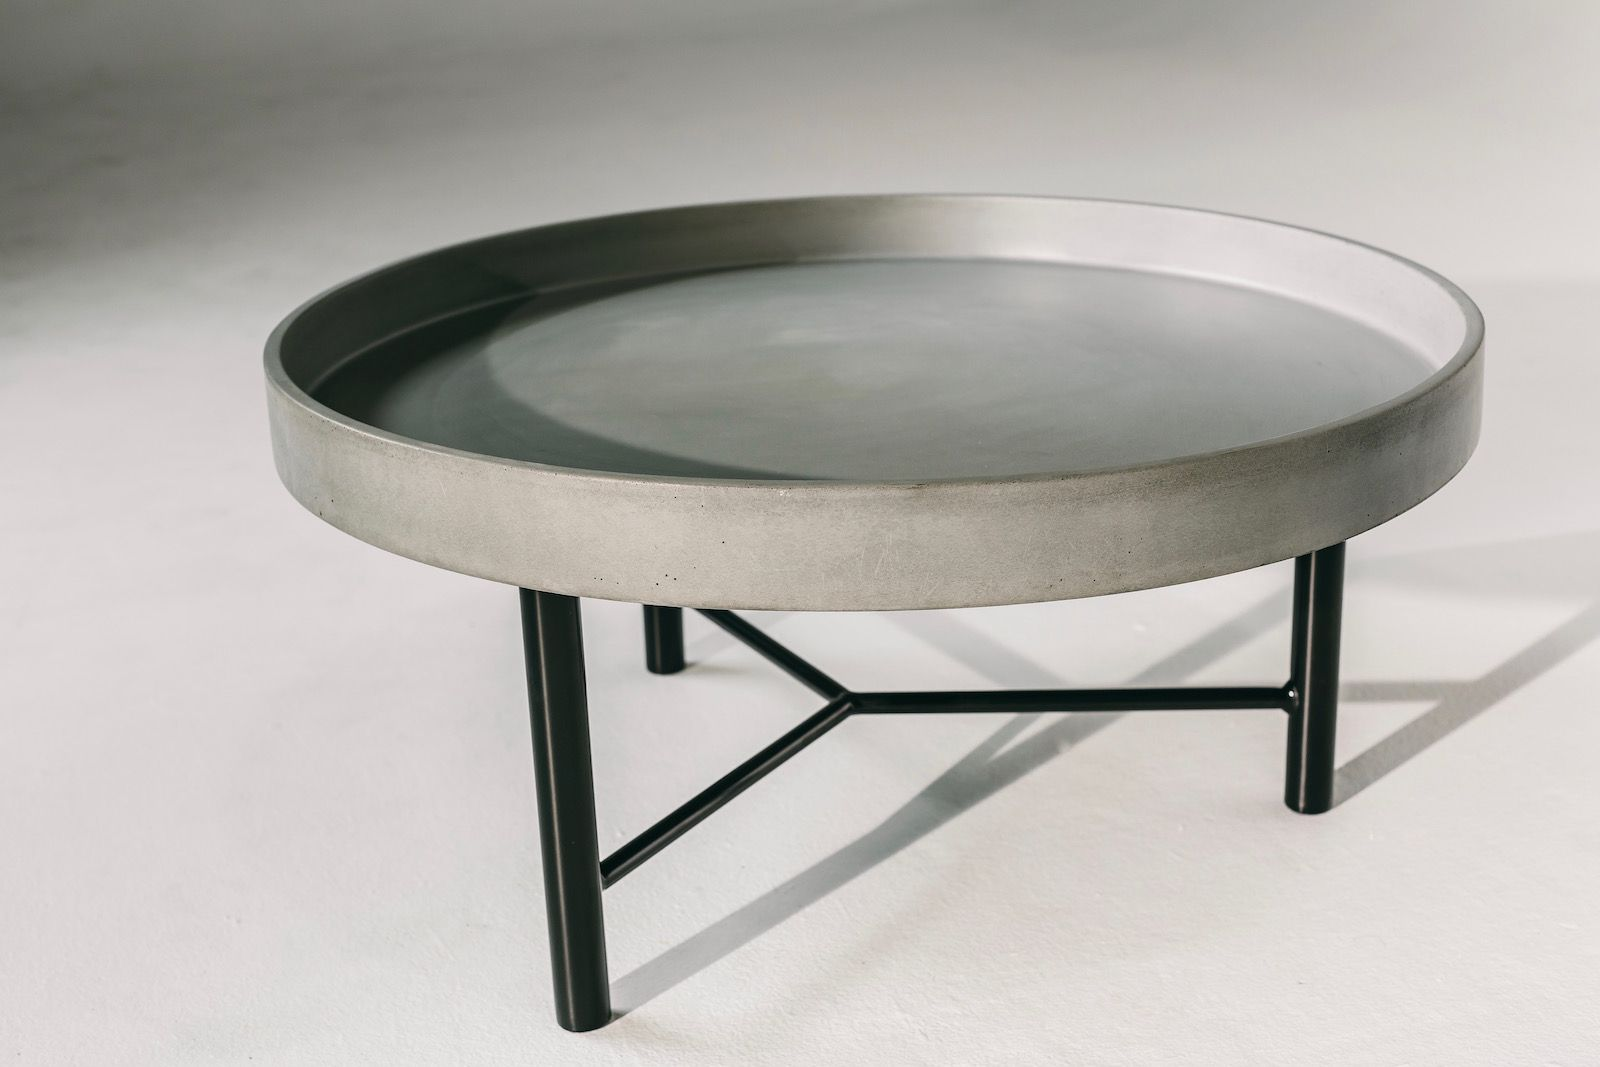 Round Concrete Coffee Table Concrete Coffee Table Coffee Table